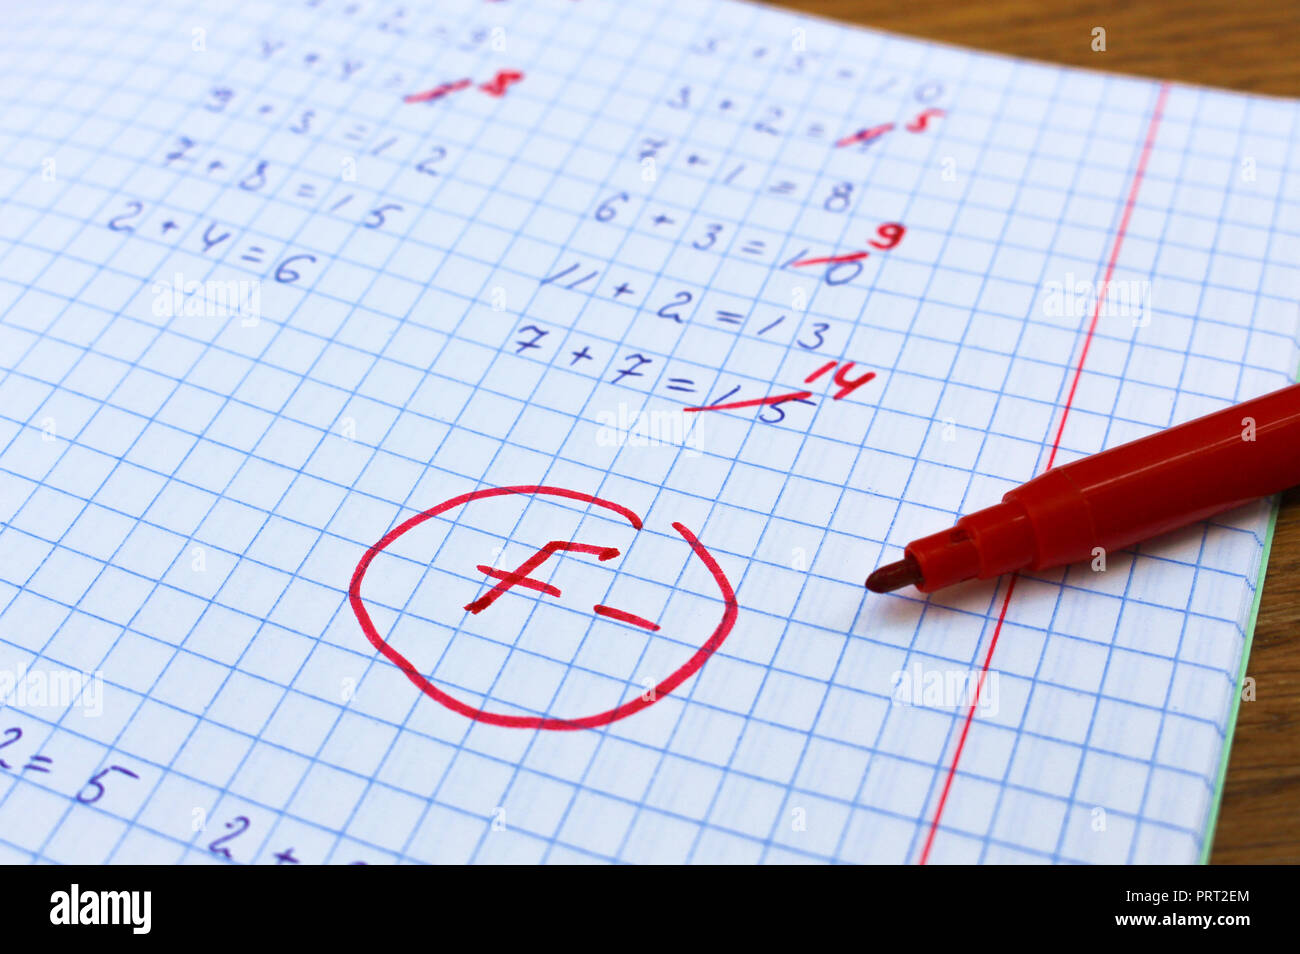 Errors corrected in red pen in a notebook. Bad score for the solution of mathematical expressions. Mark F-. - Stock Image